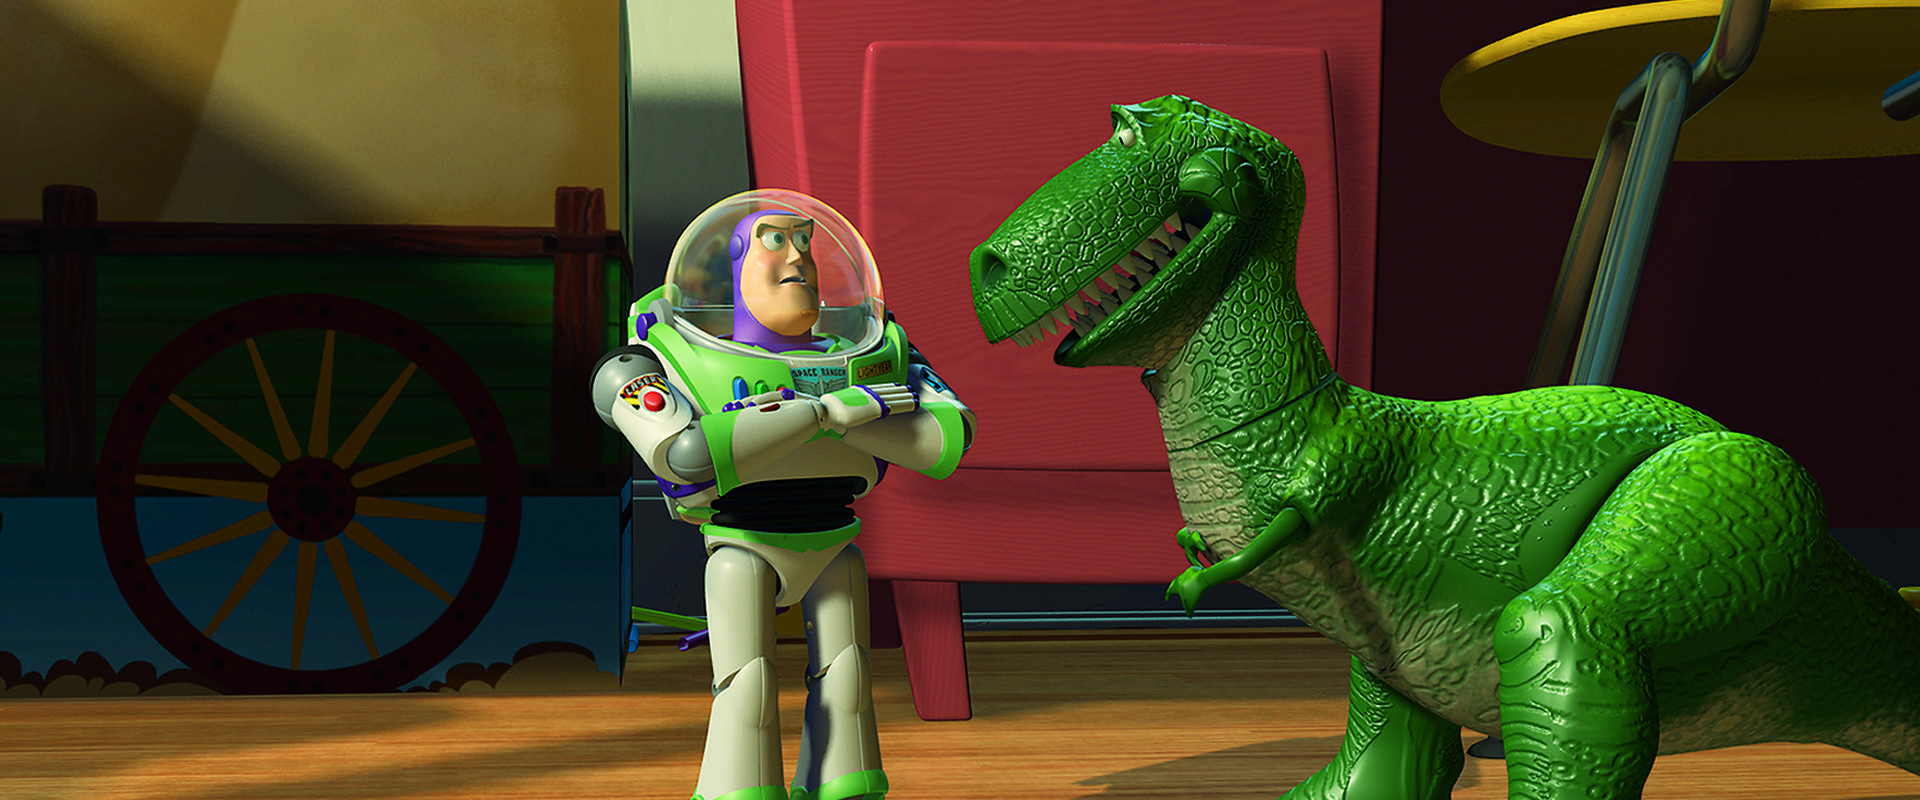 Toy Story background 2